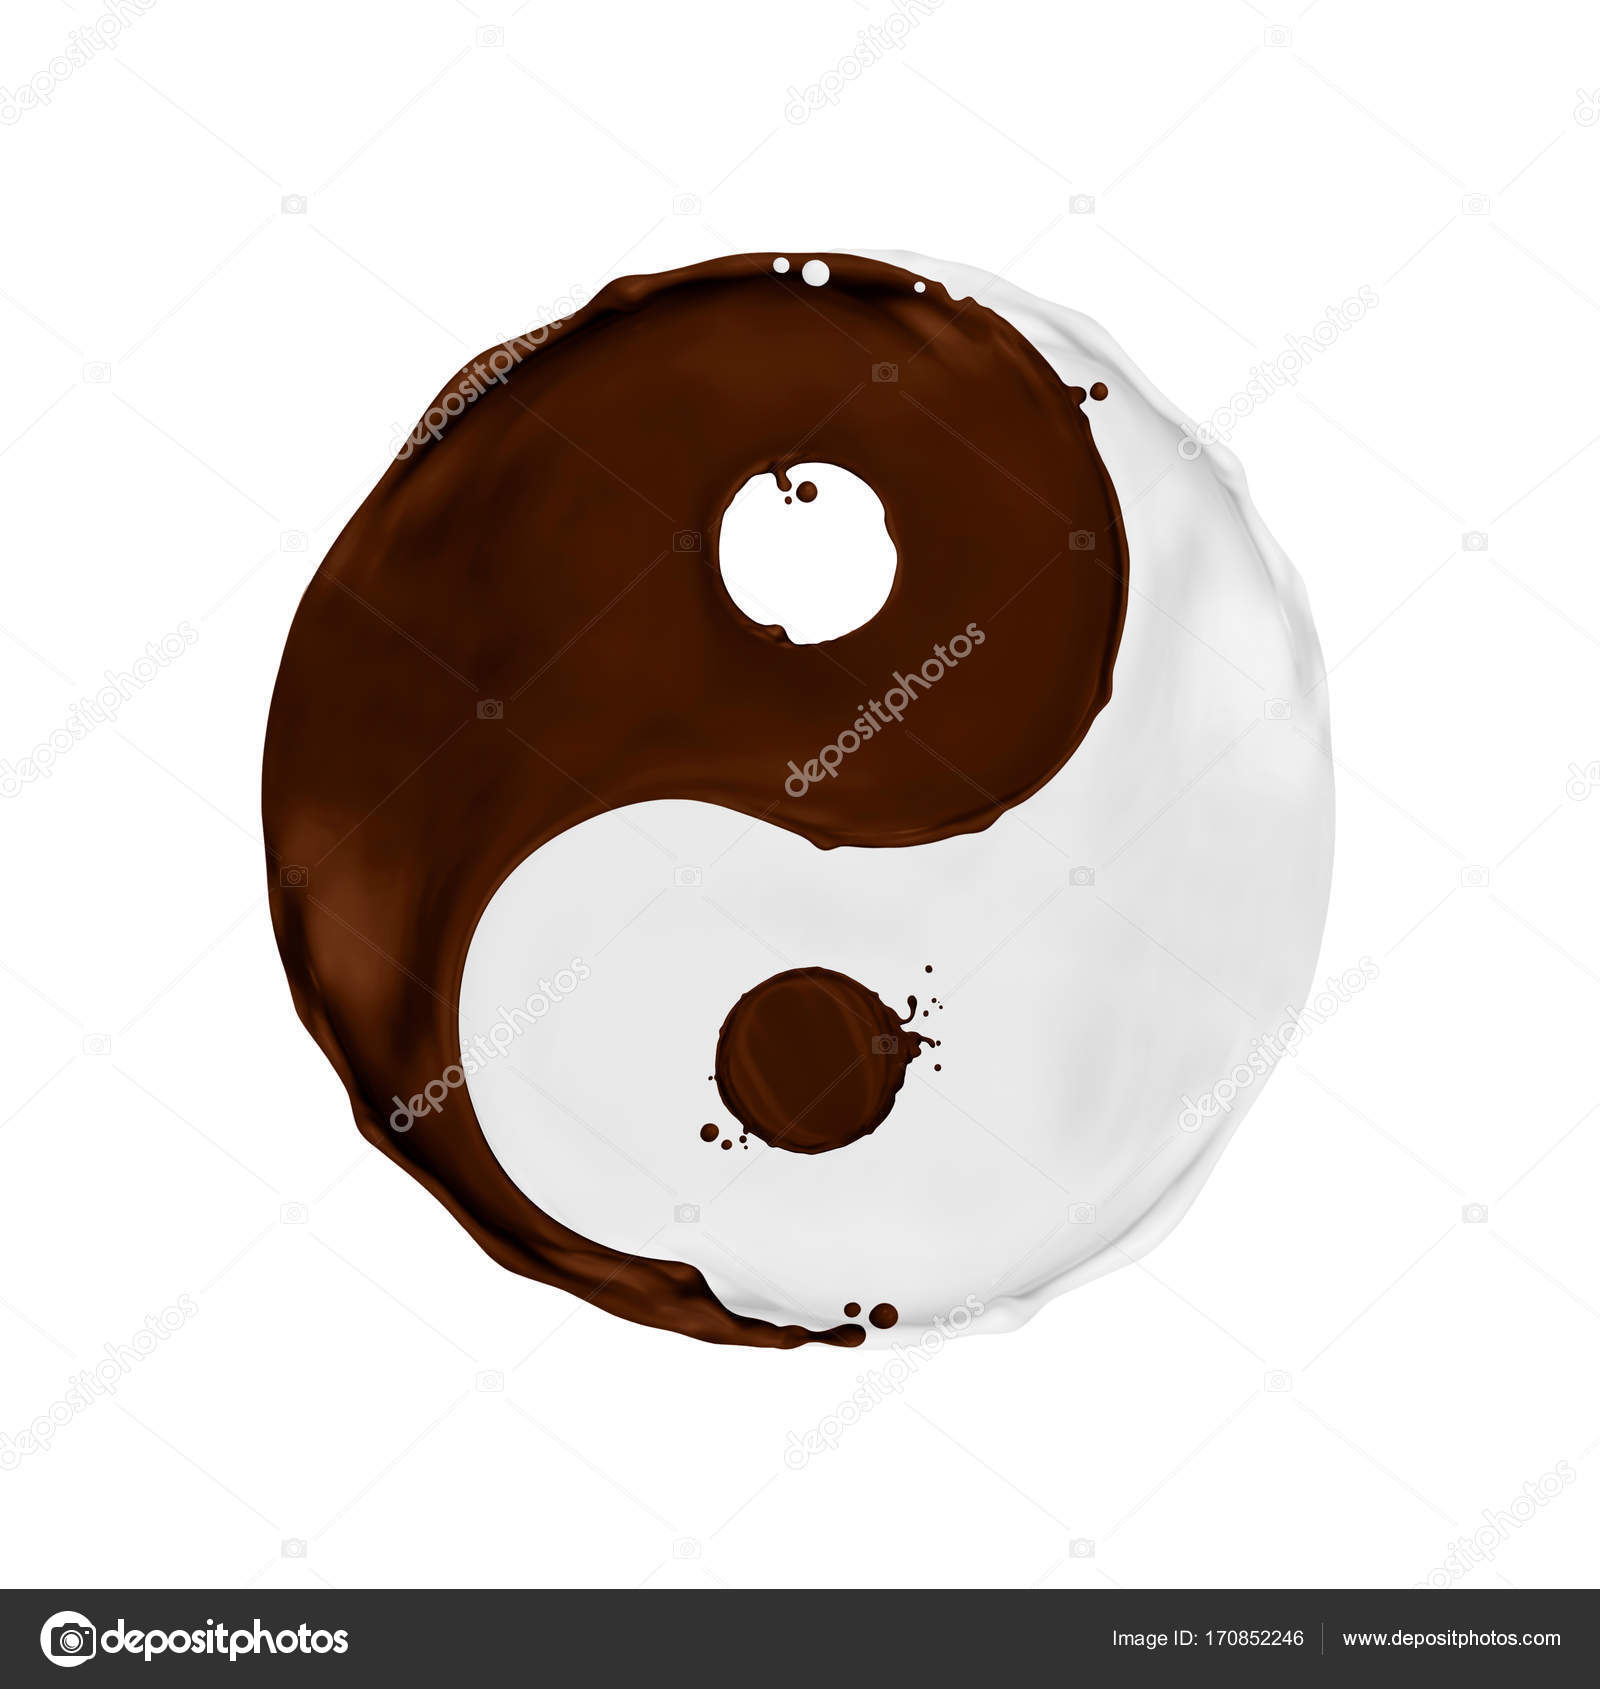 Milk and chocolate splashes in the shape of a yin yang symbol milk and chocolate splashes in the shape of a yin yang symbol stock photo buycottarizona Choice Image